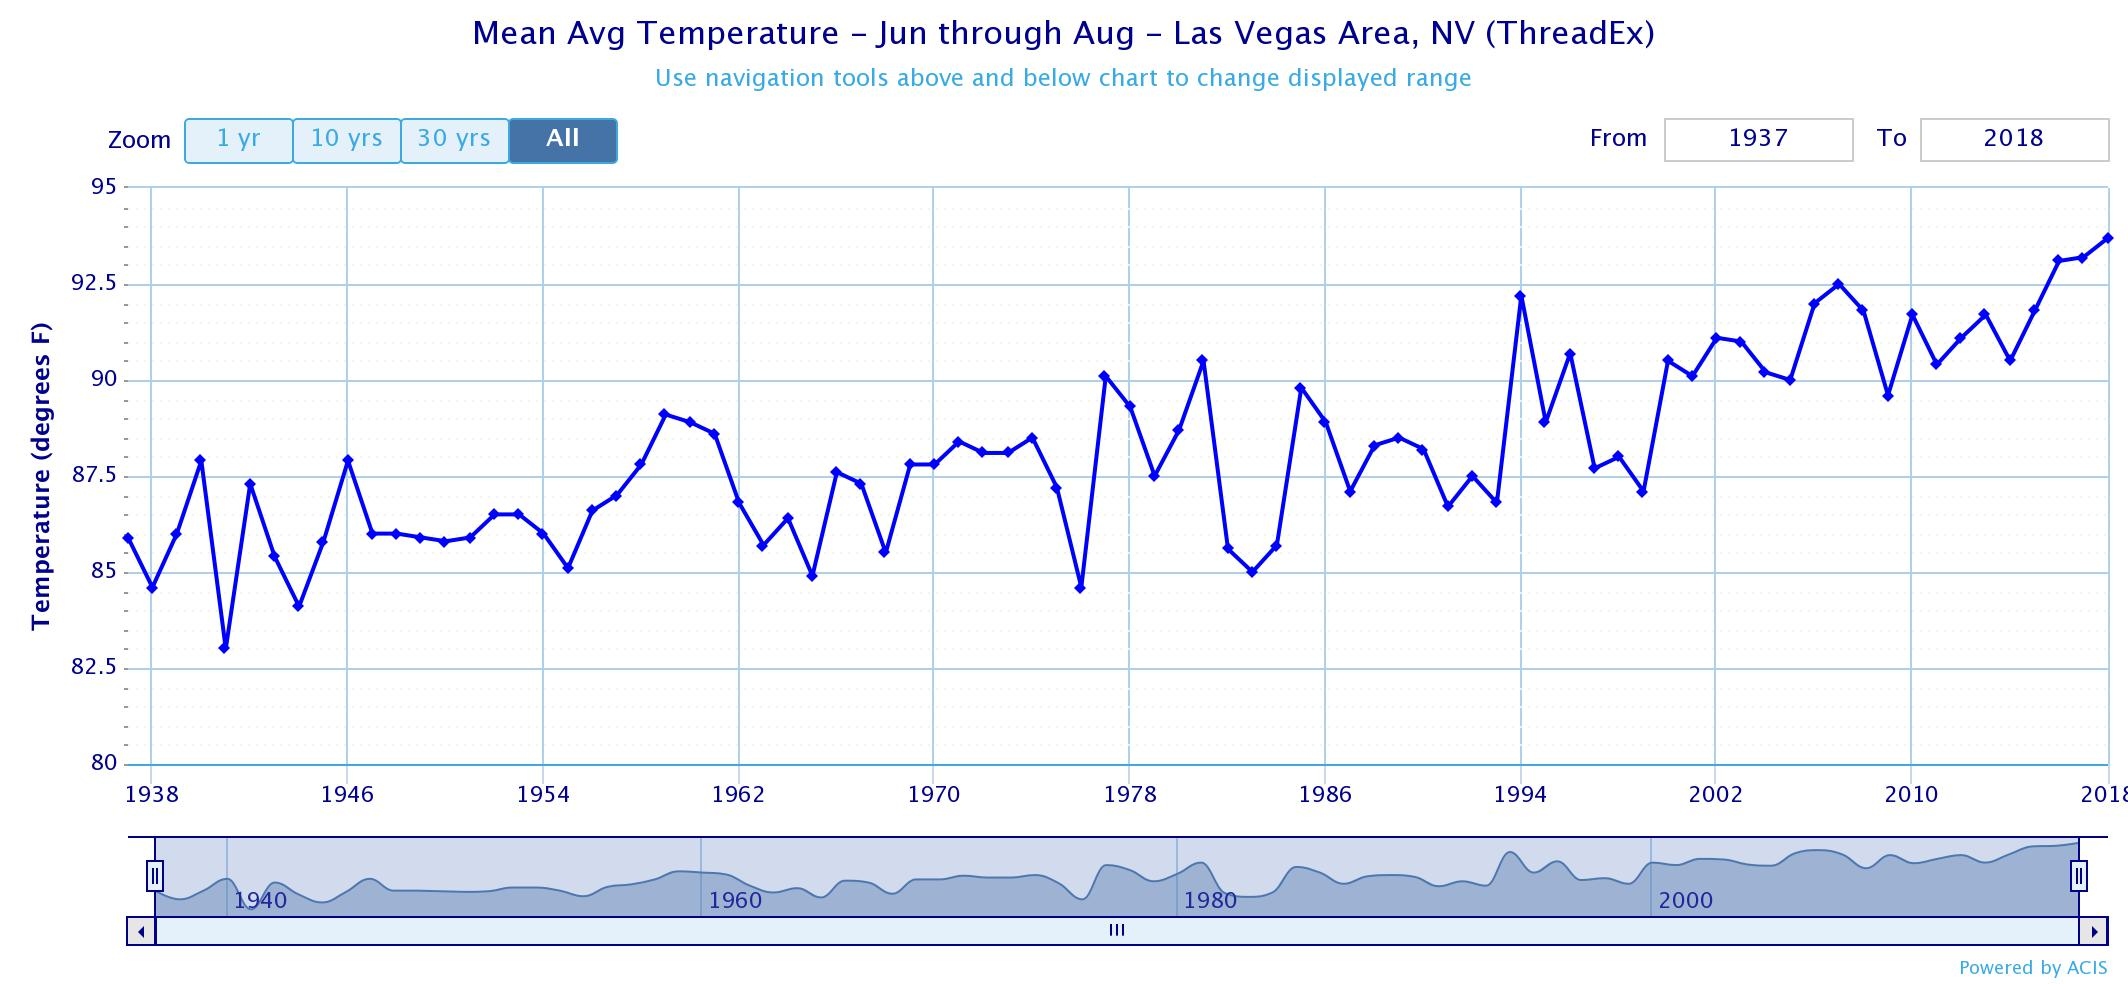 Average Temperatures For The Las Vegas Area From June To August Since 1937 Generated With Xmacis2